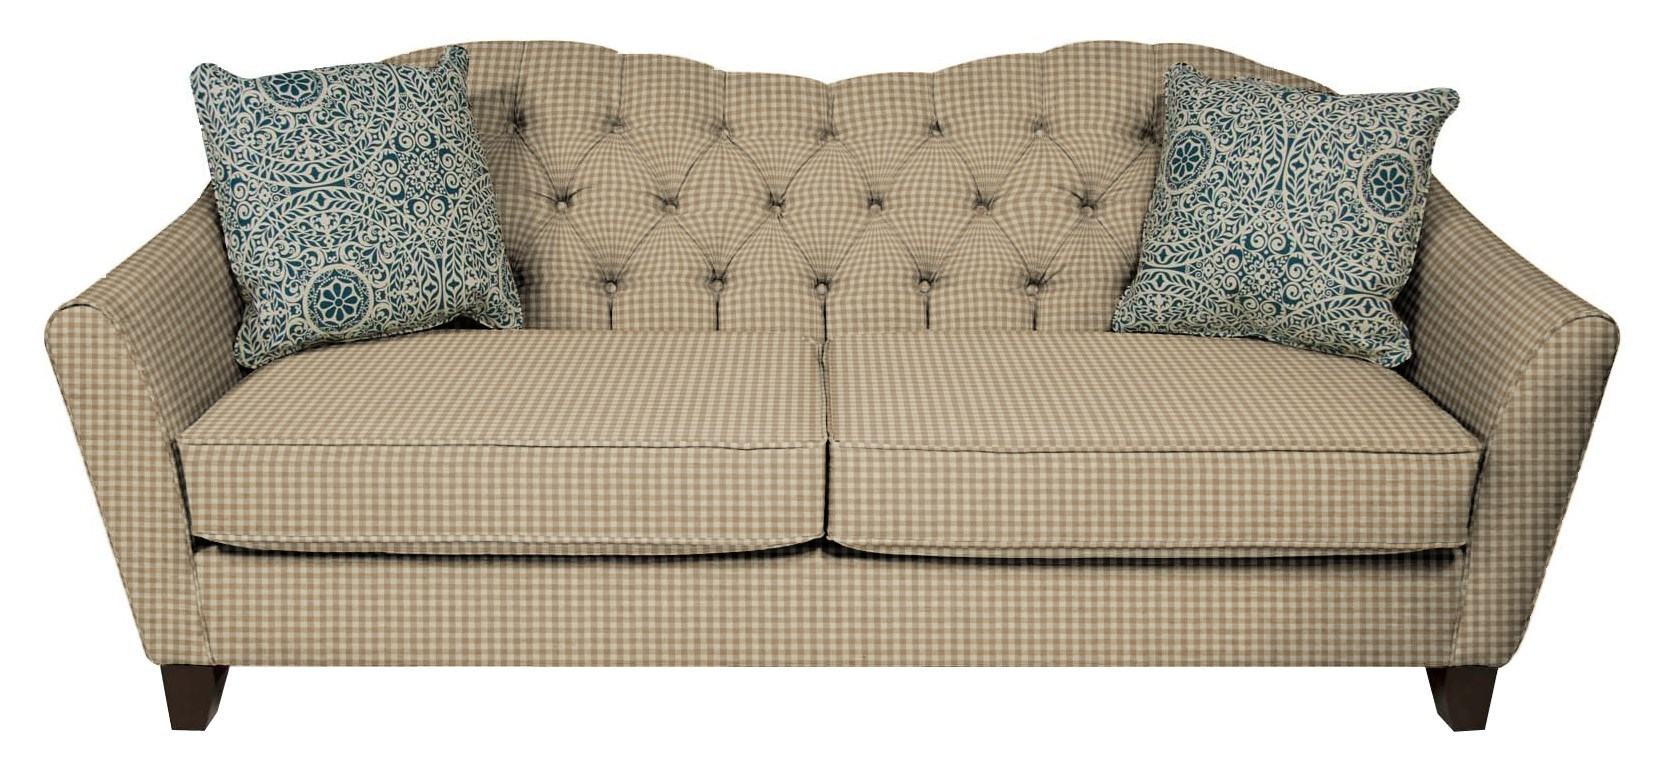 England Easton 2X00 Cottage Style Sofa with Tufted Back